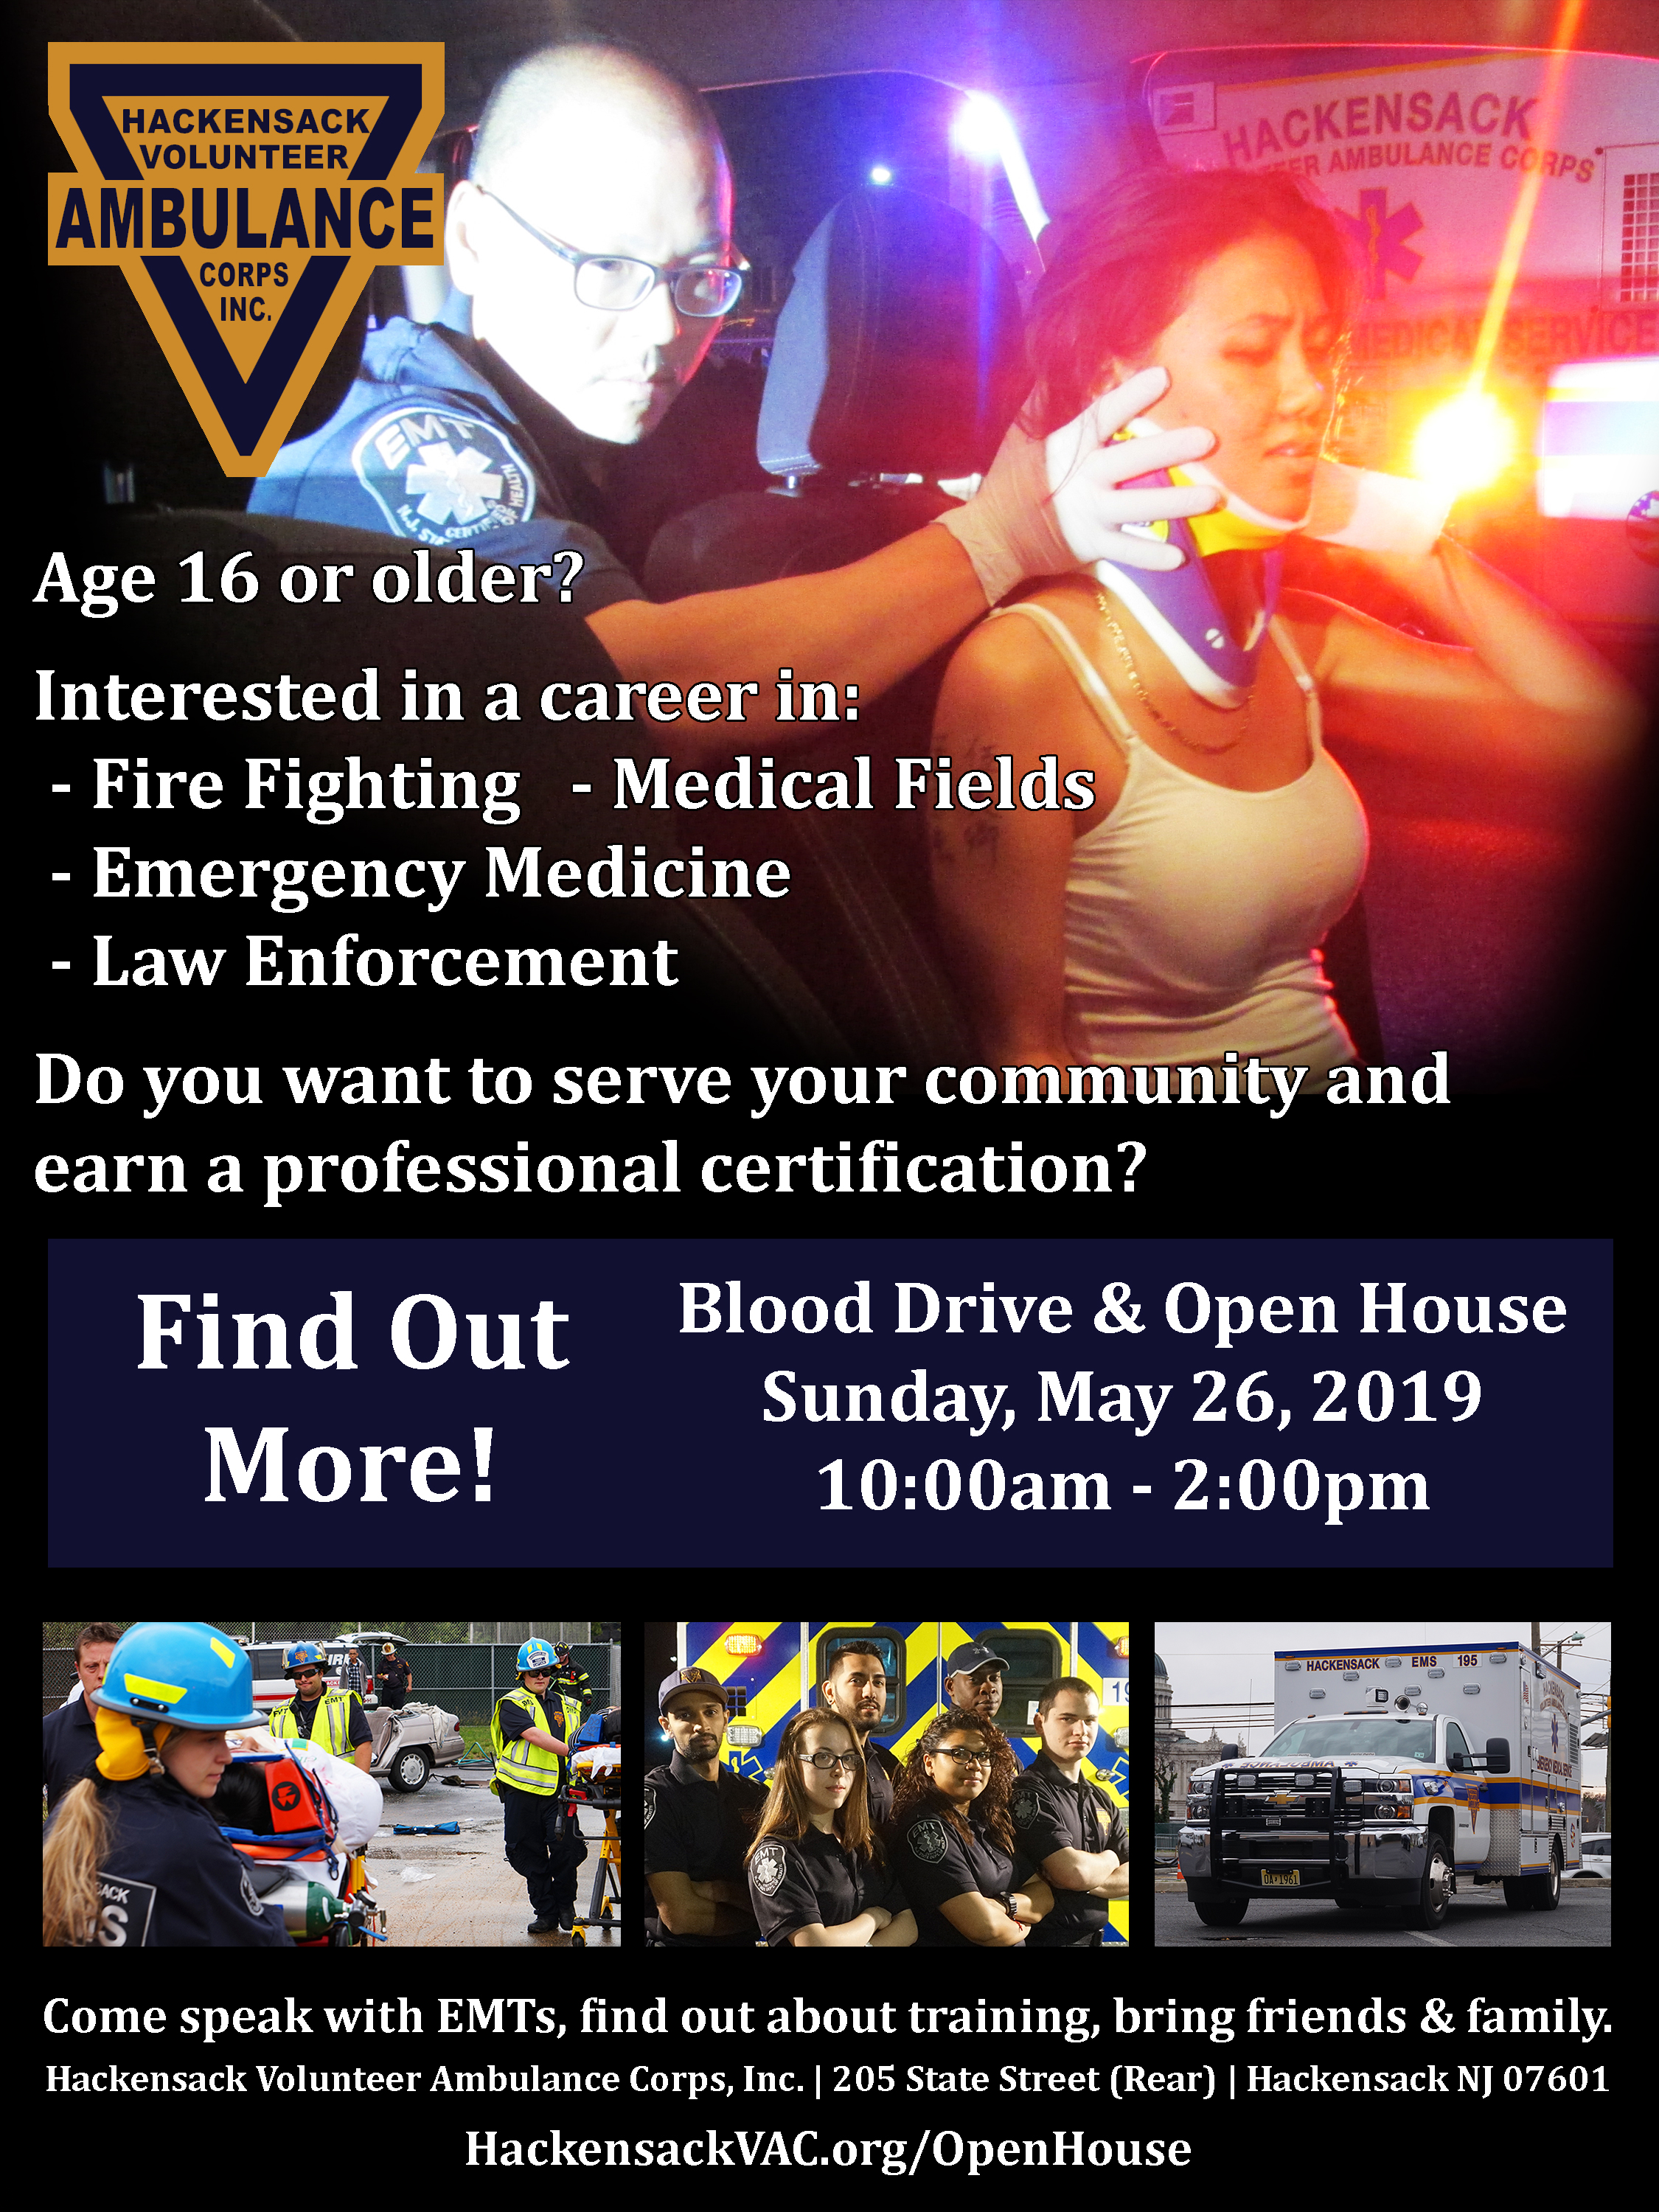 Hackensack Volunteer Ambulance Corps Open House and Blood Drive Sunday, May 26